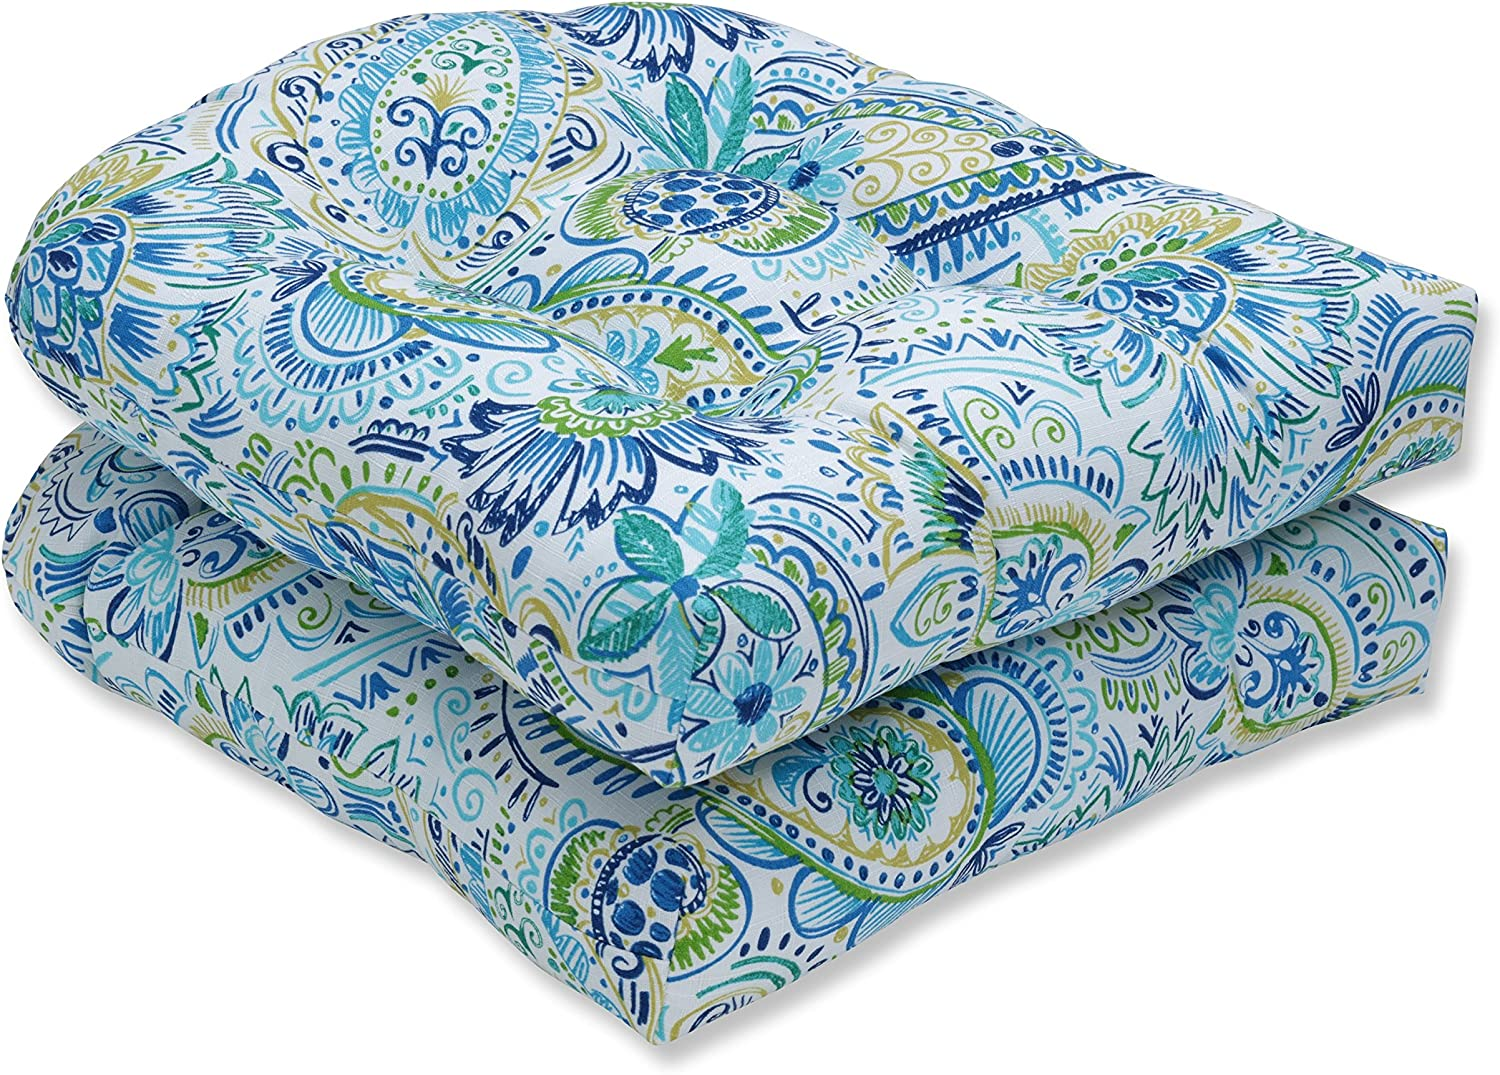 Pillow Perfect Outdoor Indoor Gilford Baltic Wicker Seat Cushion Set of 2 , 2 Piece